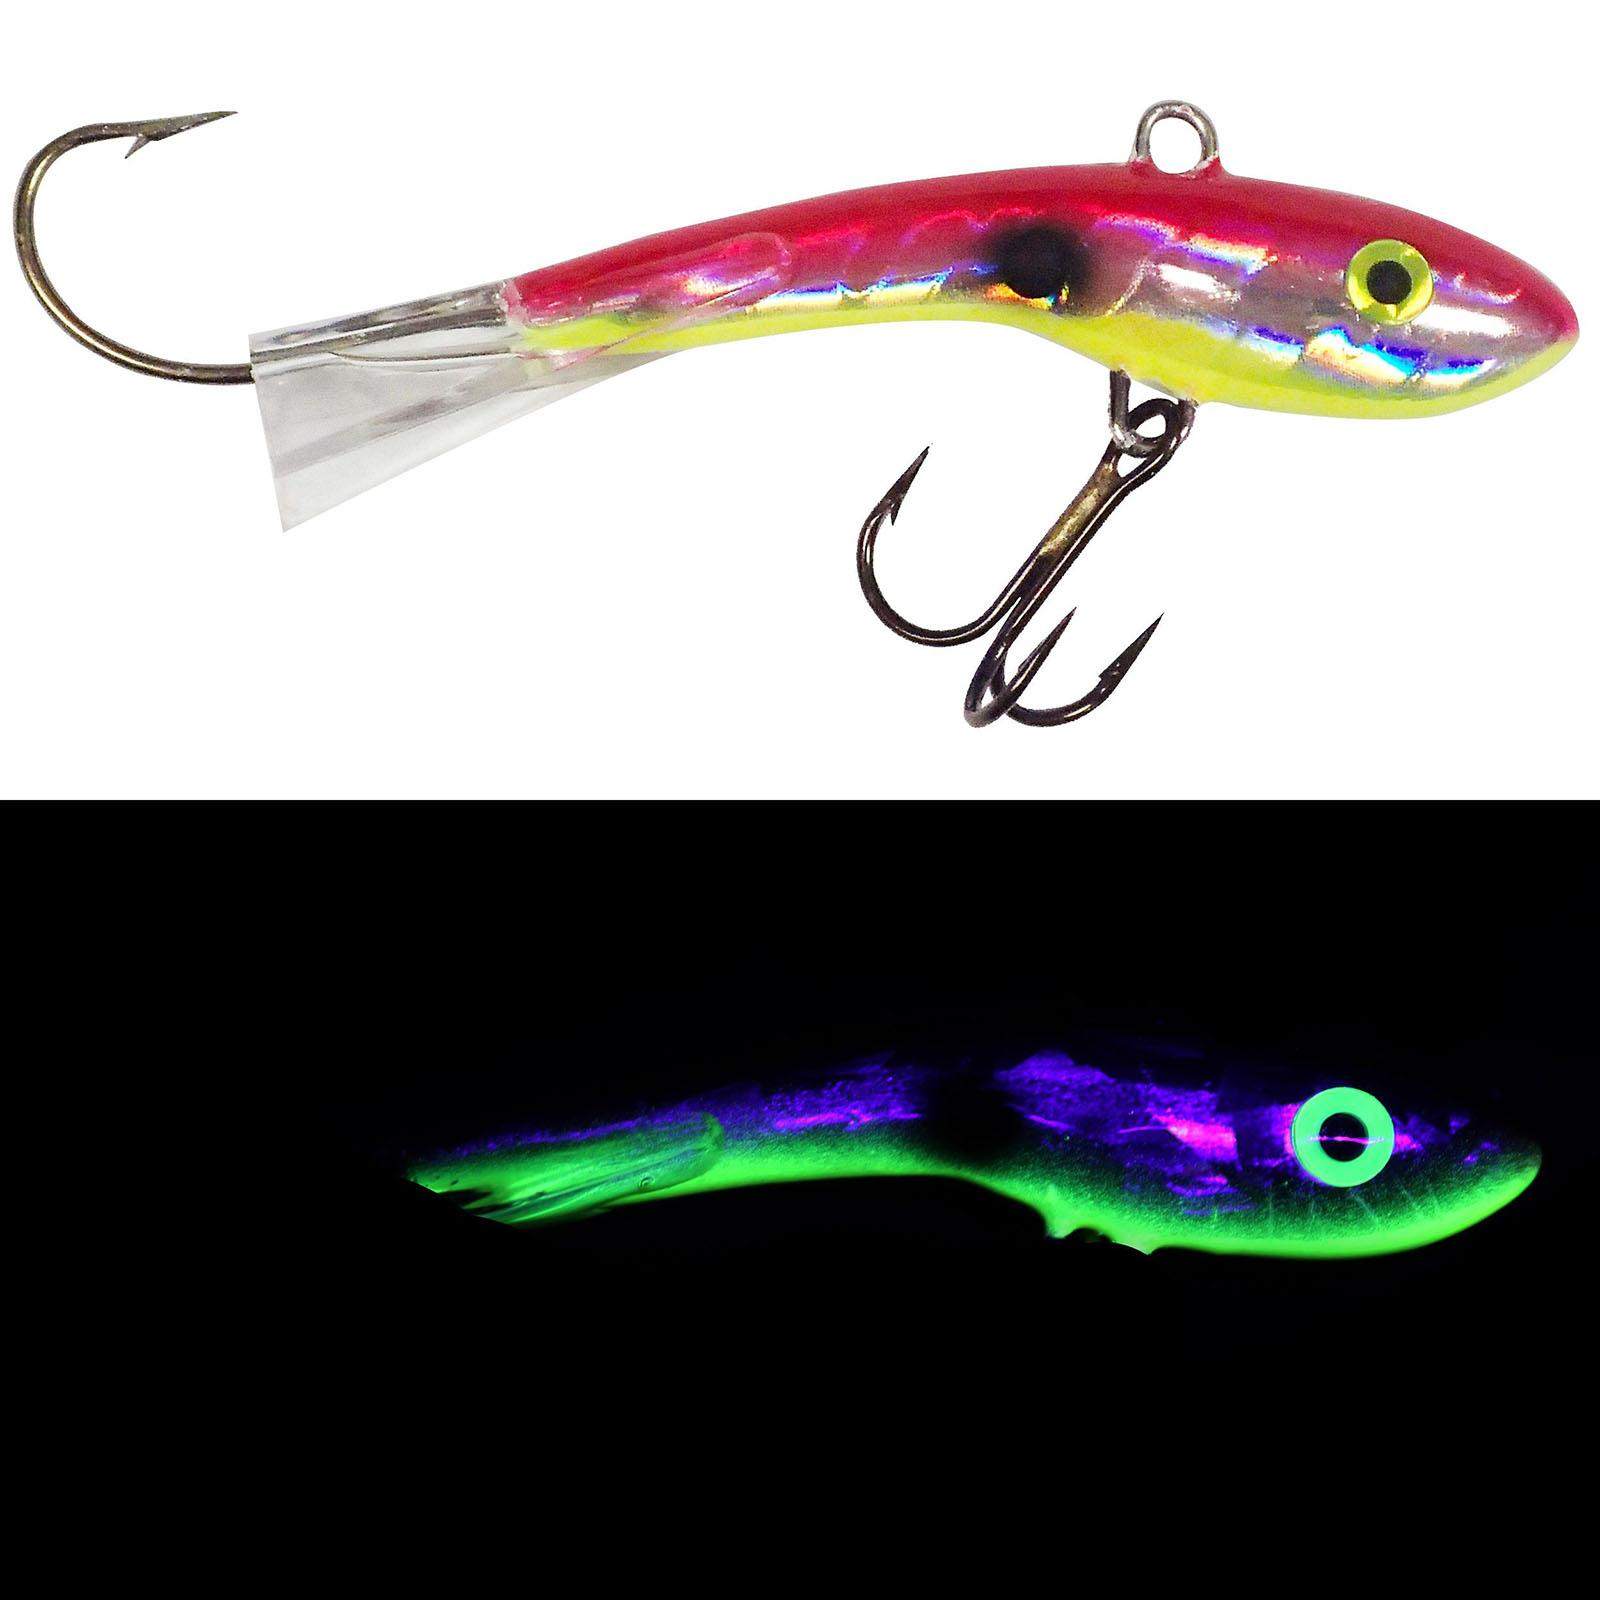 Holographic Cranberry Shad